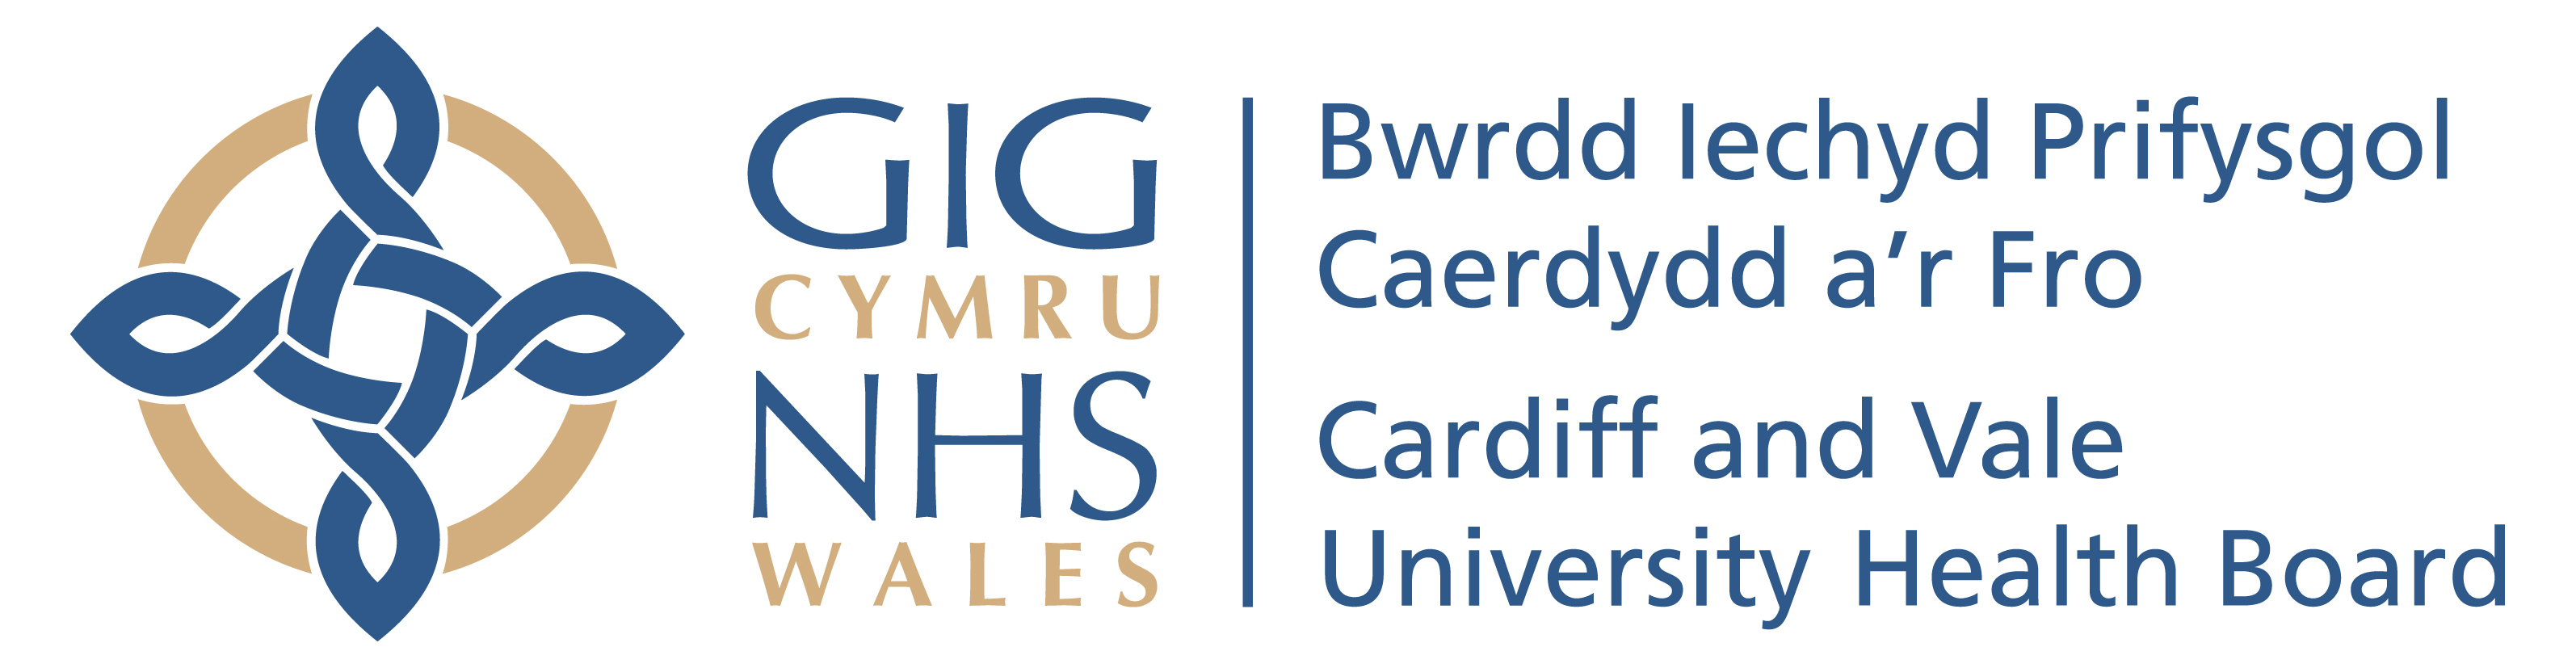 cardiff university health board graphic